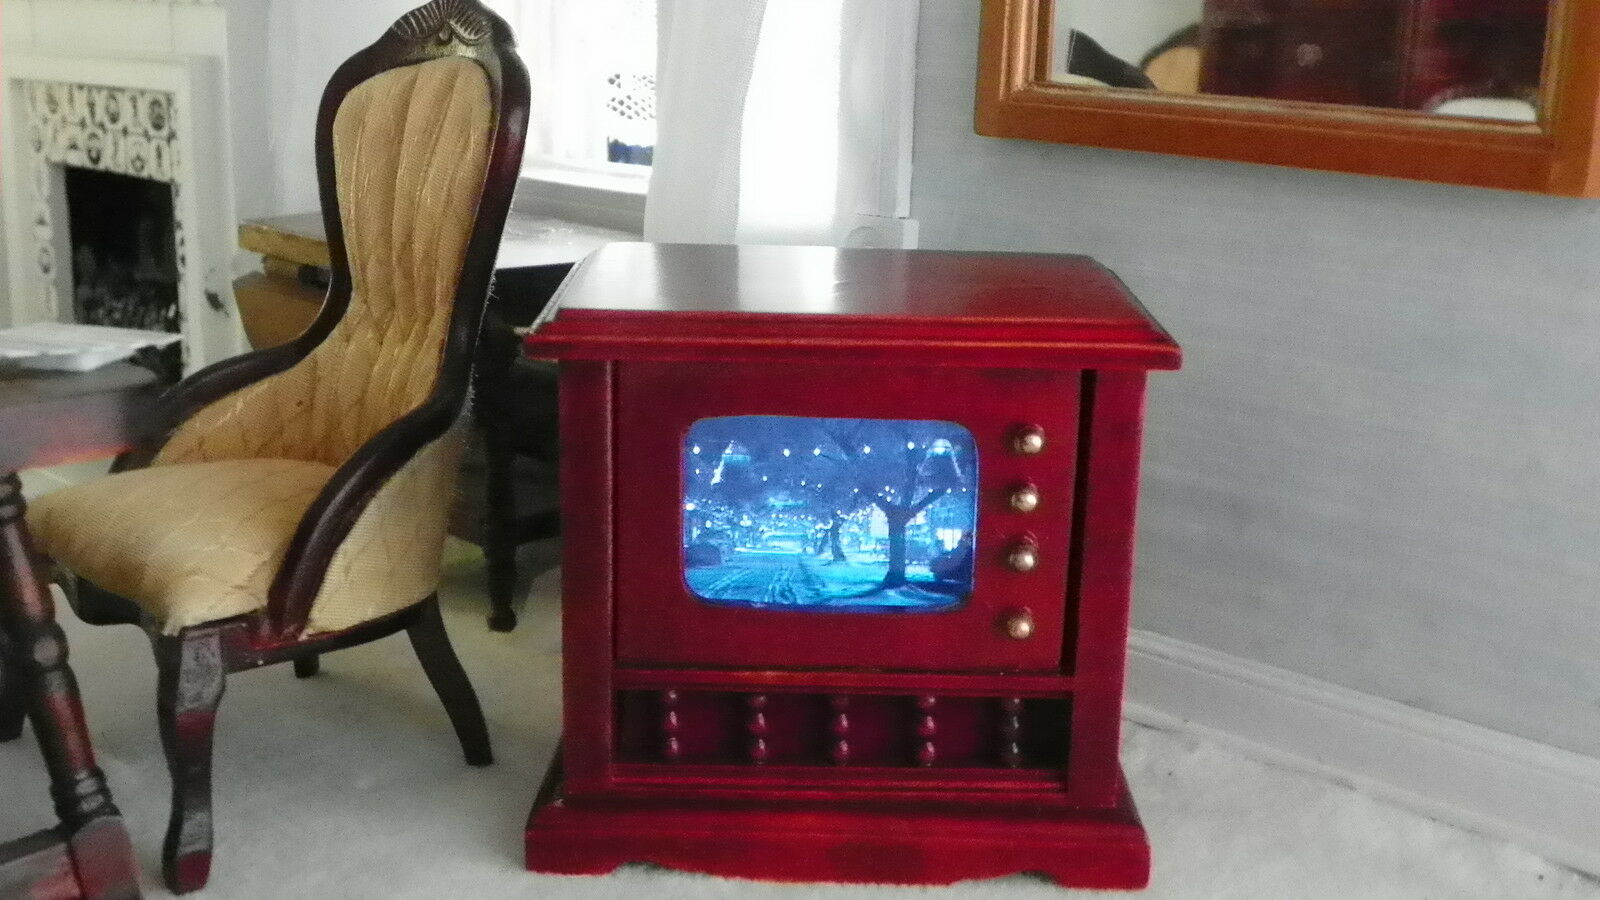 Dollhouse Miniature Working Tv Video Outstanding Feedback No Wires Electrical Wiring Play Now 1 Of 7free Shipping